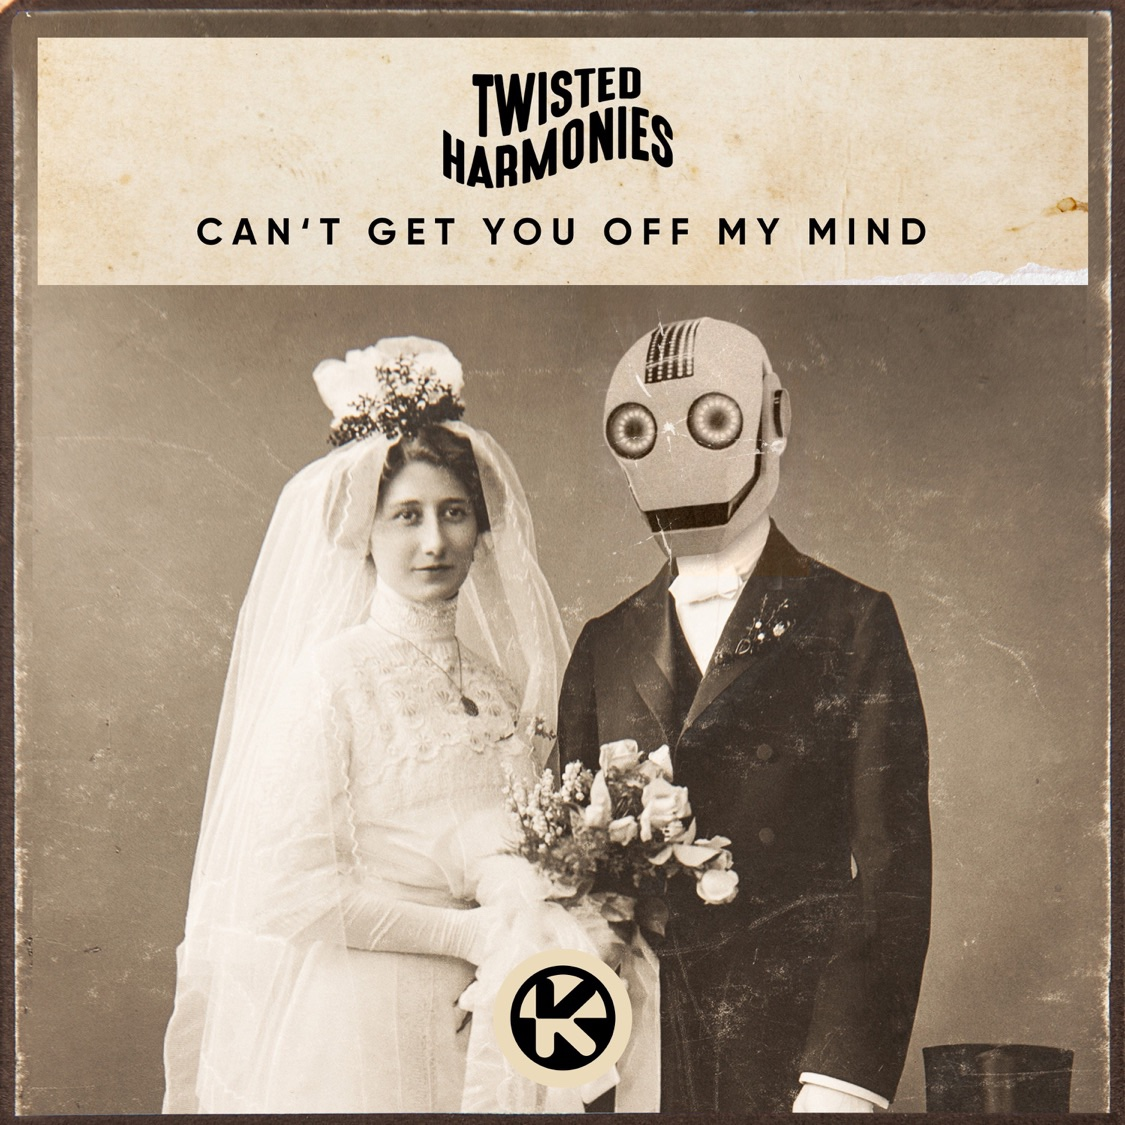 #NowPlaying  [Oct 16, 2020]#Dance Can't Get You Off My Mind - 2:33 #TwistedHarmonies  [#atMonFavori] https://t.co/MG9OPmhdEj